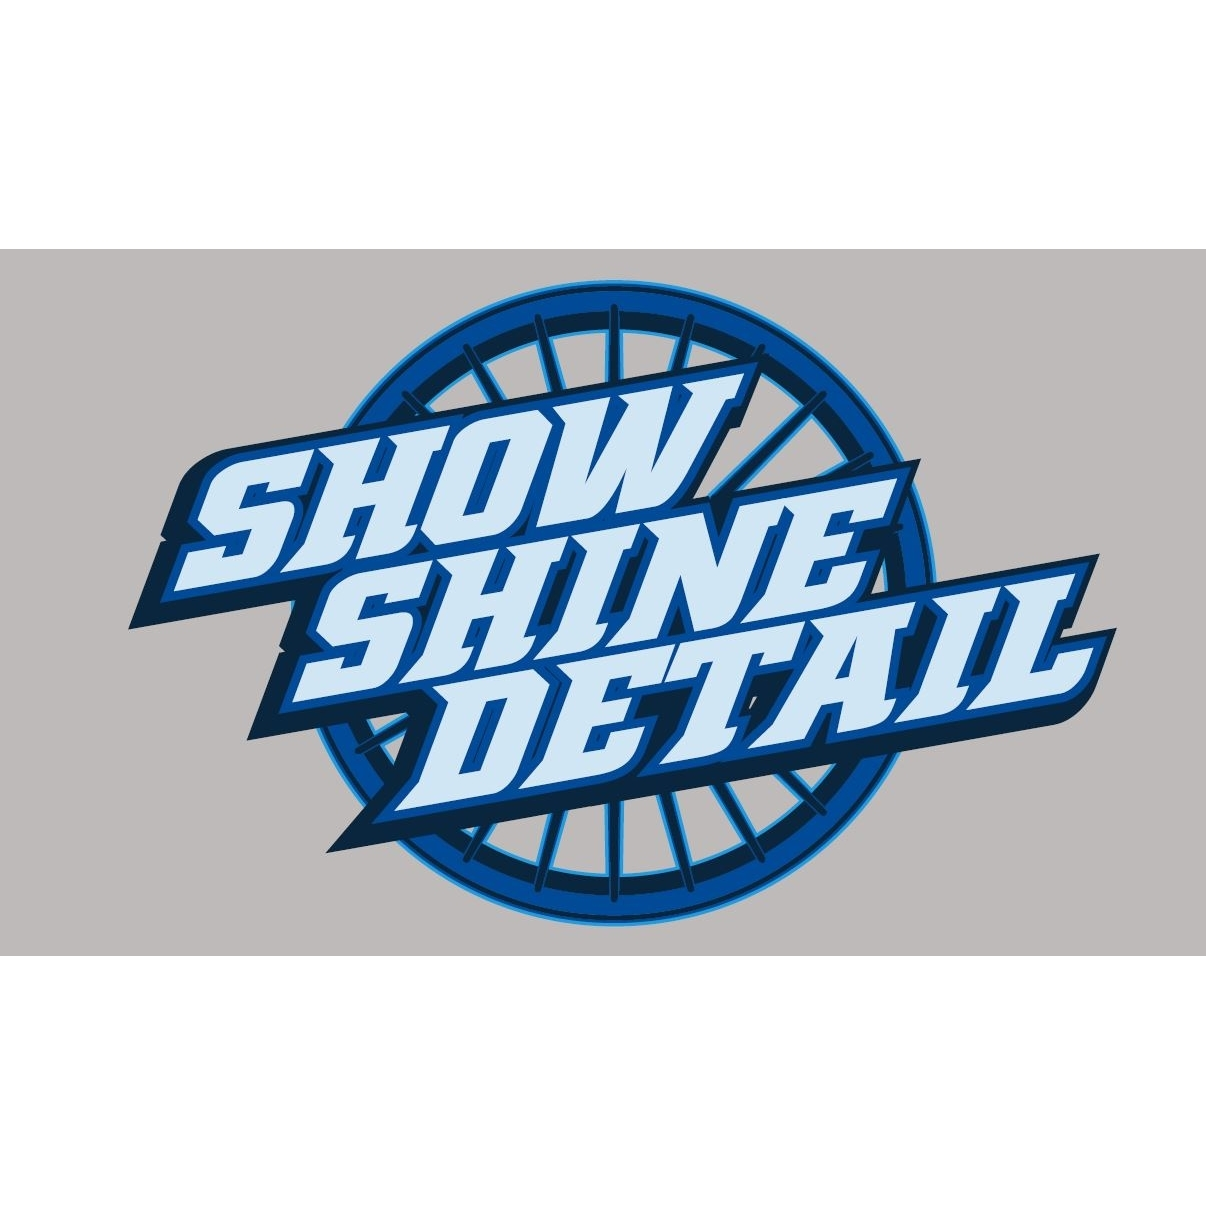 Motorcycle Stores Near Me >> Show Shine Detail Coupons near me in Windsor | 8coupons